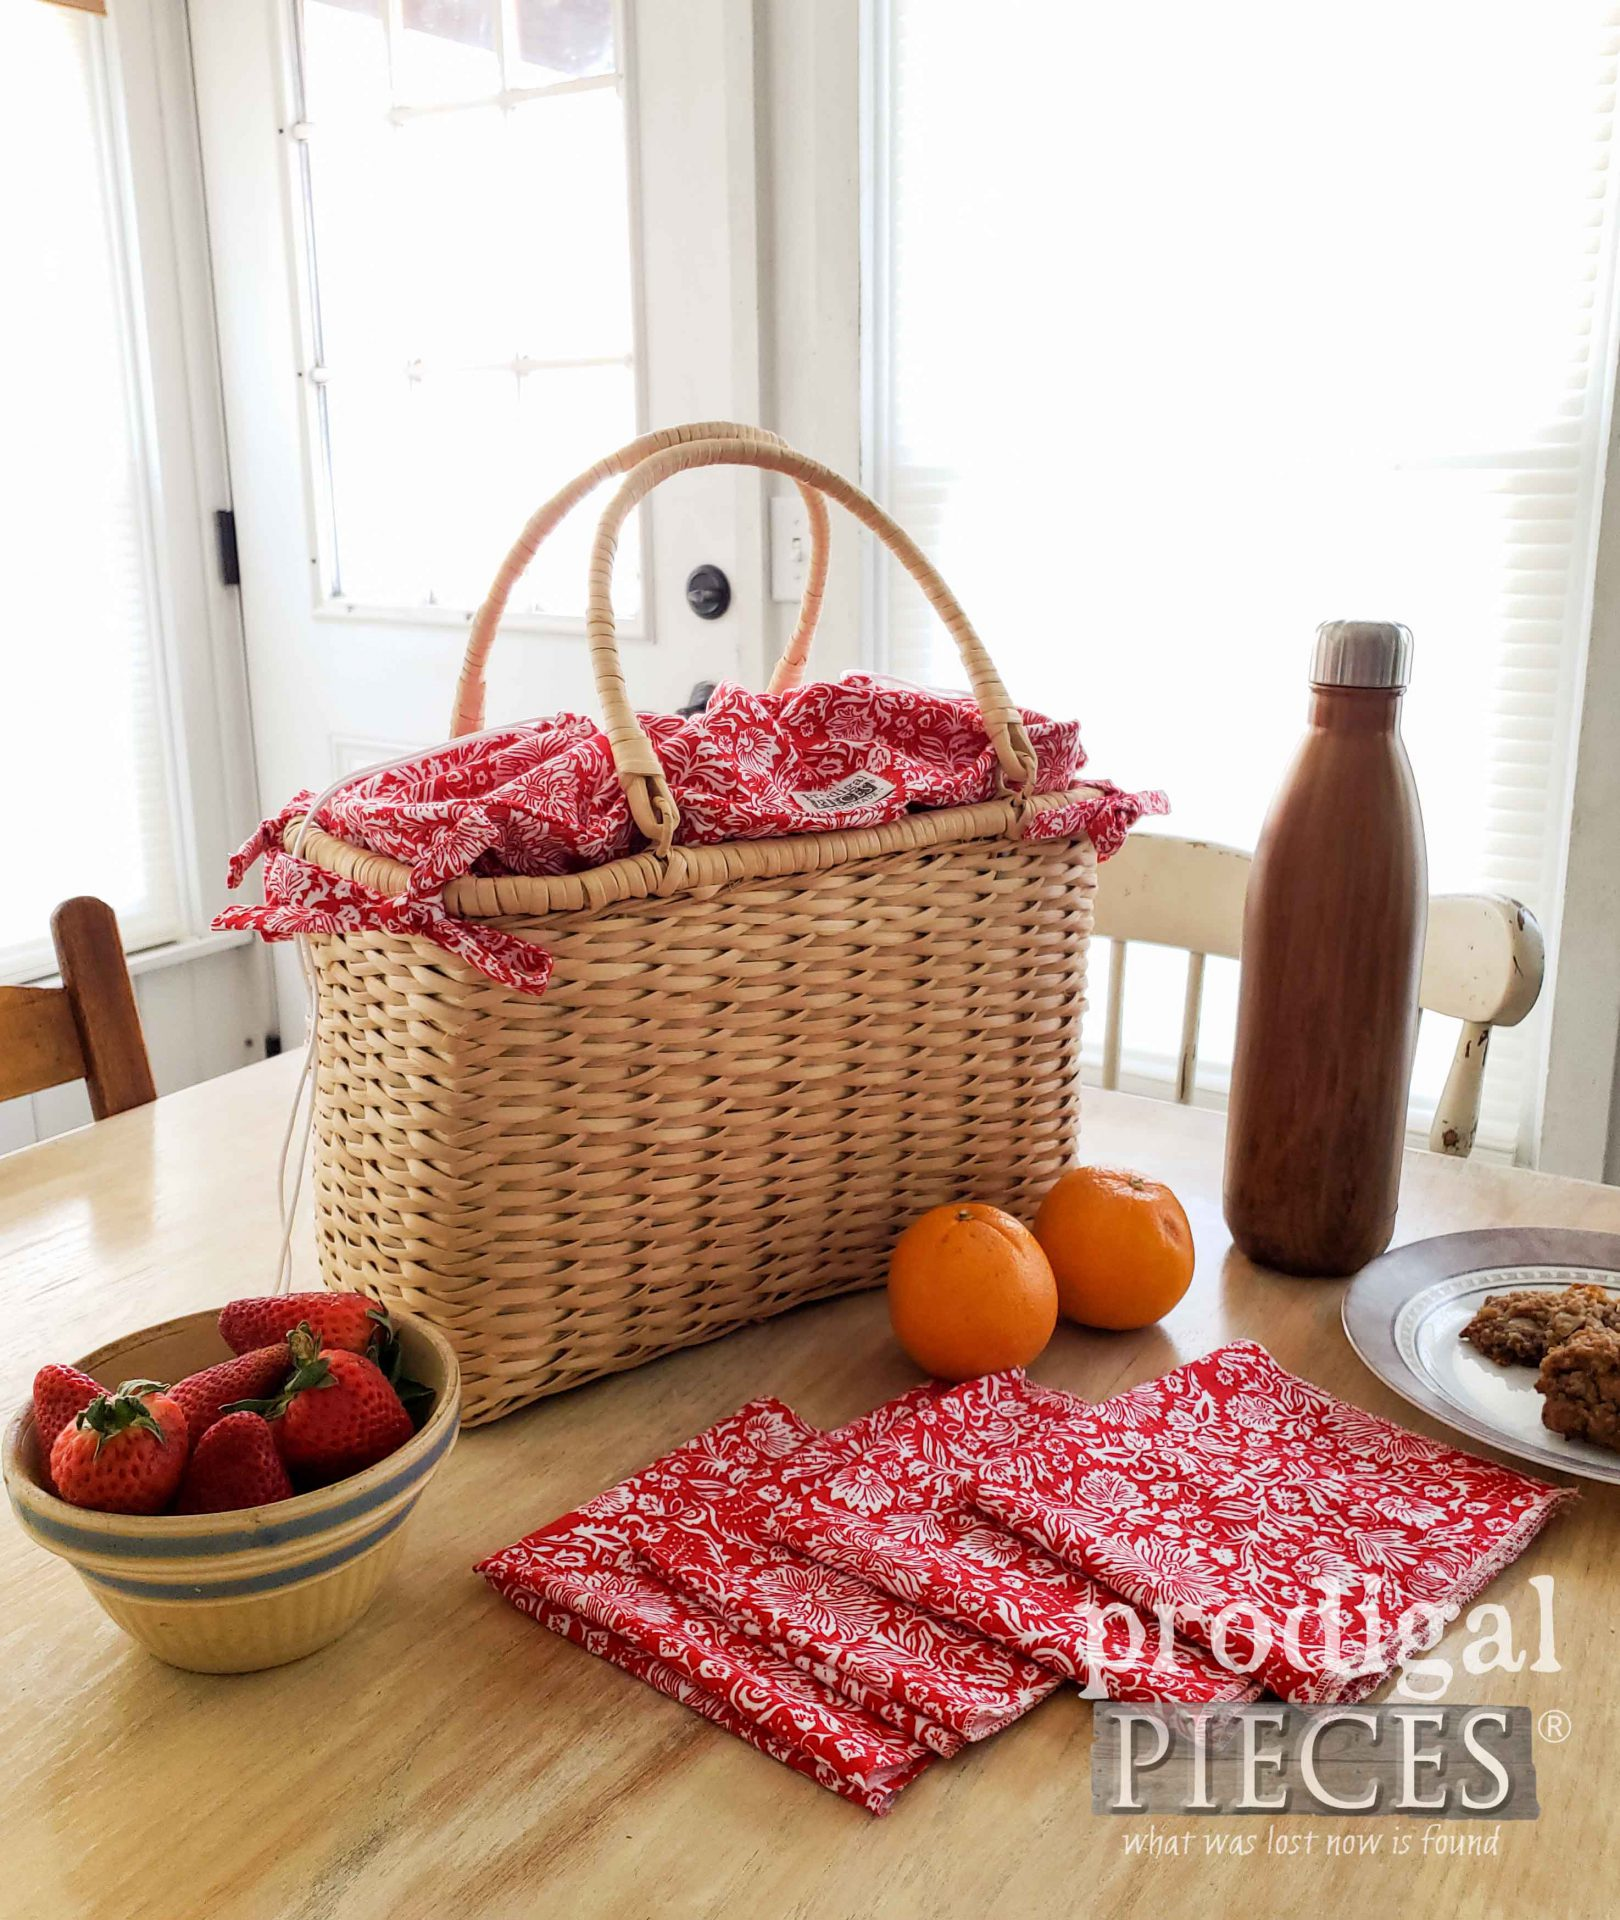 Picnic Basket with Cloth Napkins by Larissa of Prodigal Pieces | Visit prodigalpieces.com #prodigalpieces #lunch #picnic #farmhouse #fashion